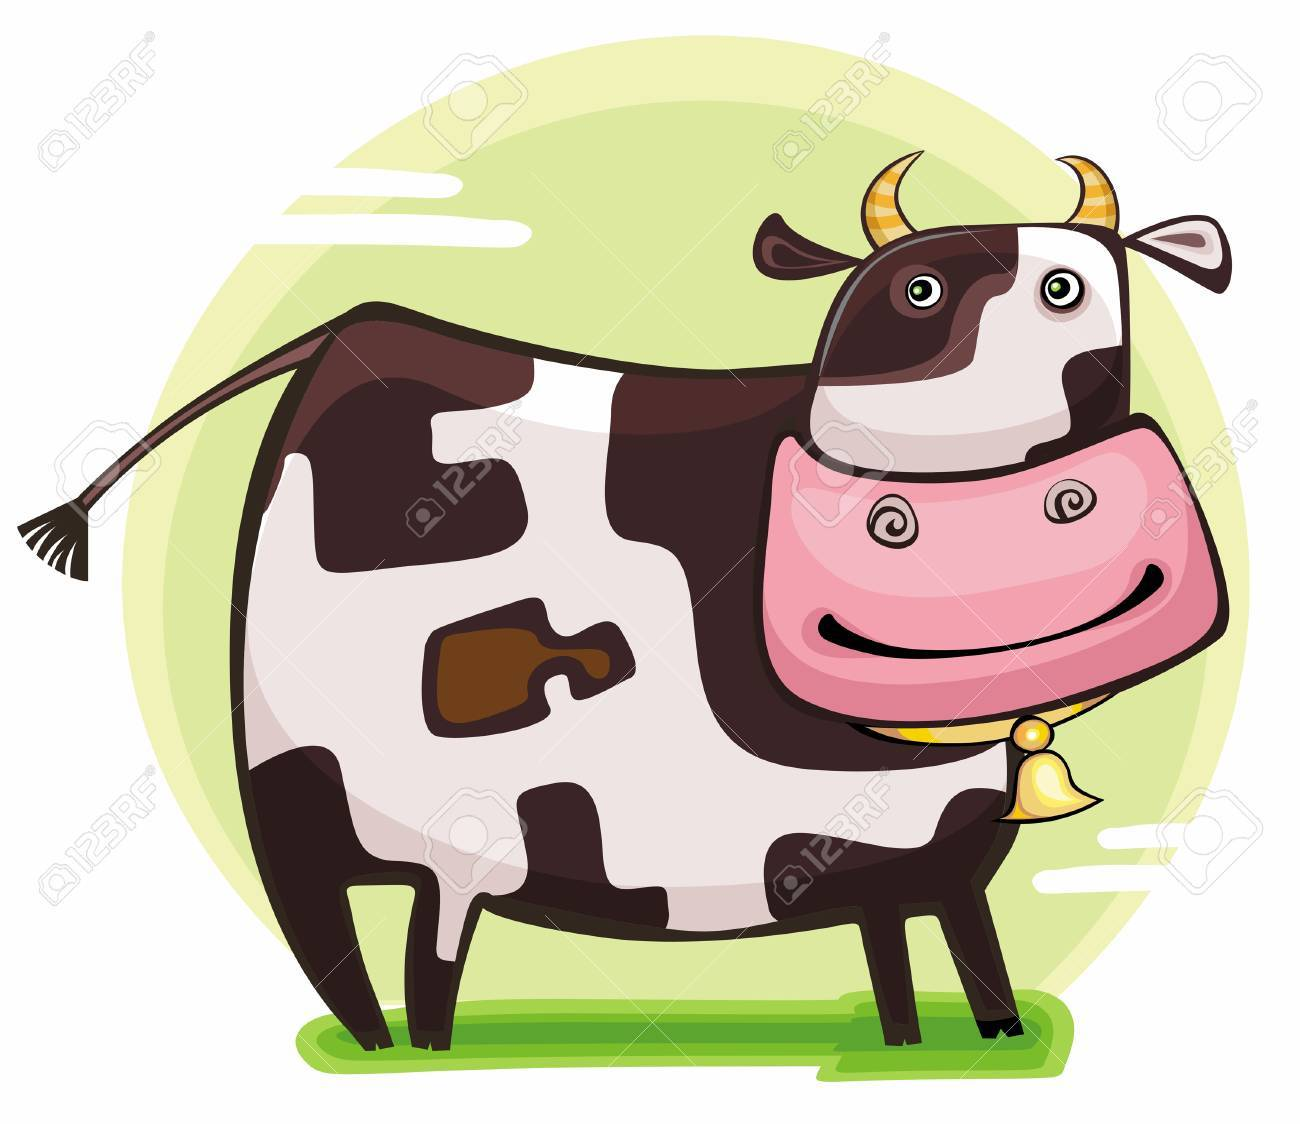 Cute friendly cow. 2009 is the Year of the Ox according to the Chinese Zodiac Stock Vector - 4747704